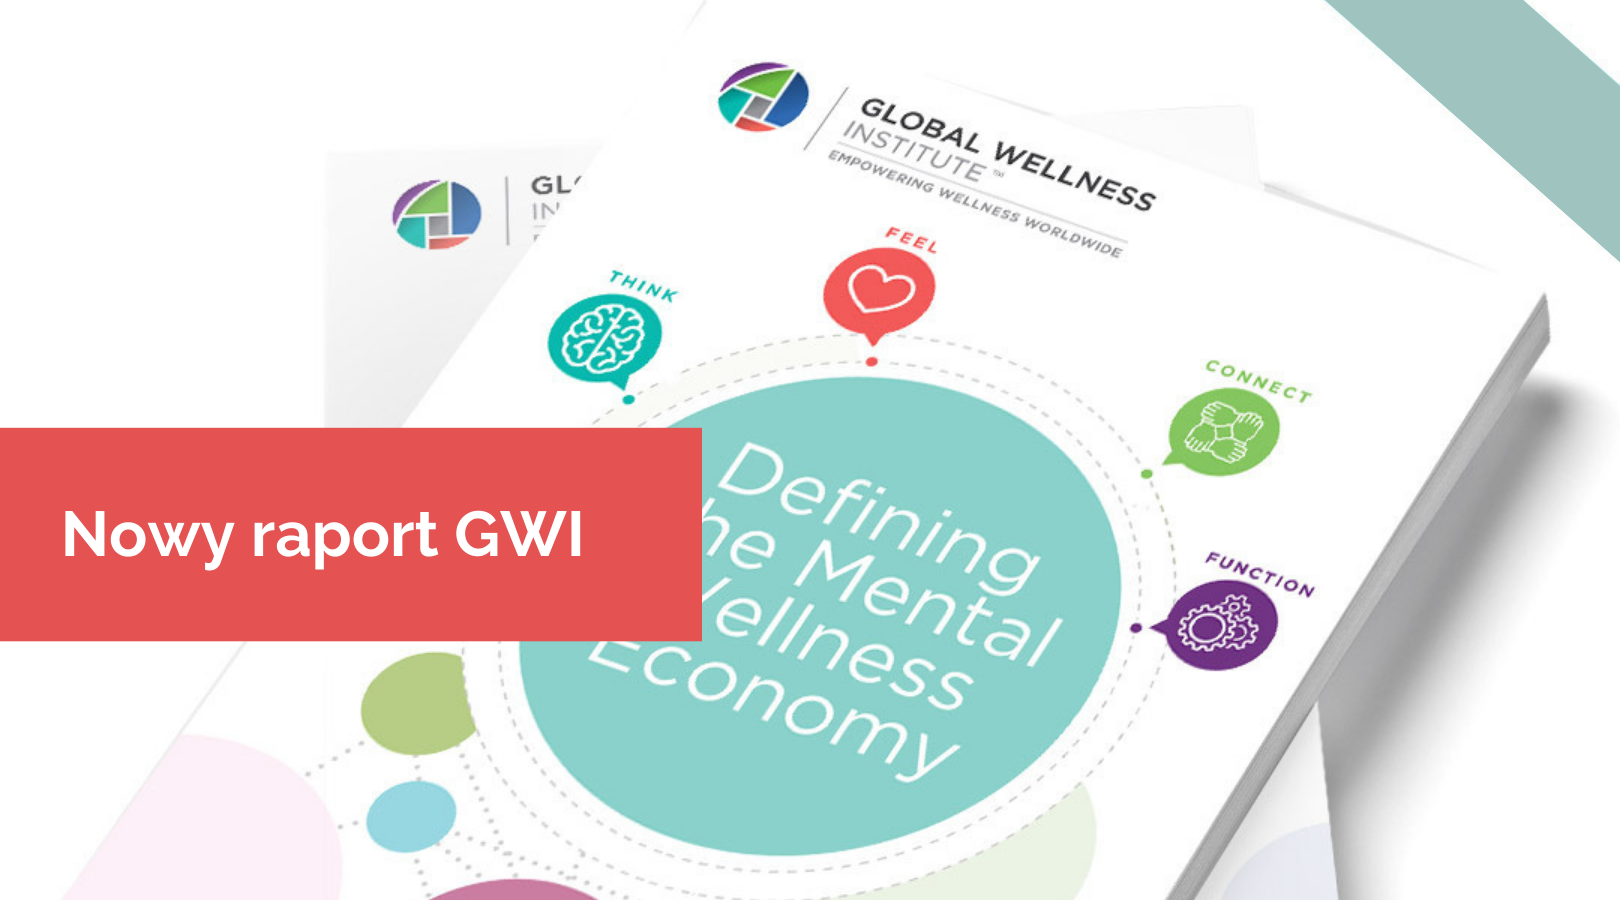 Mental Wellness. Nowy raport GWI